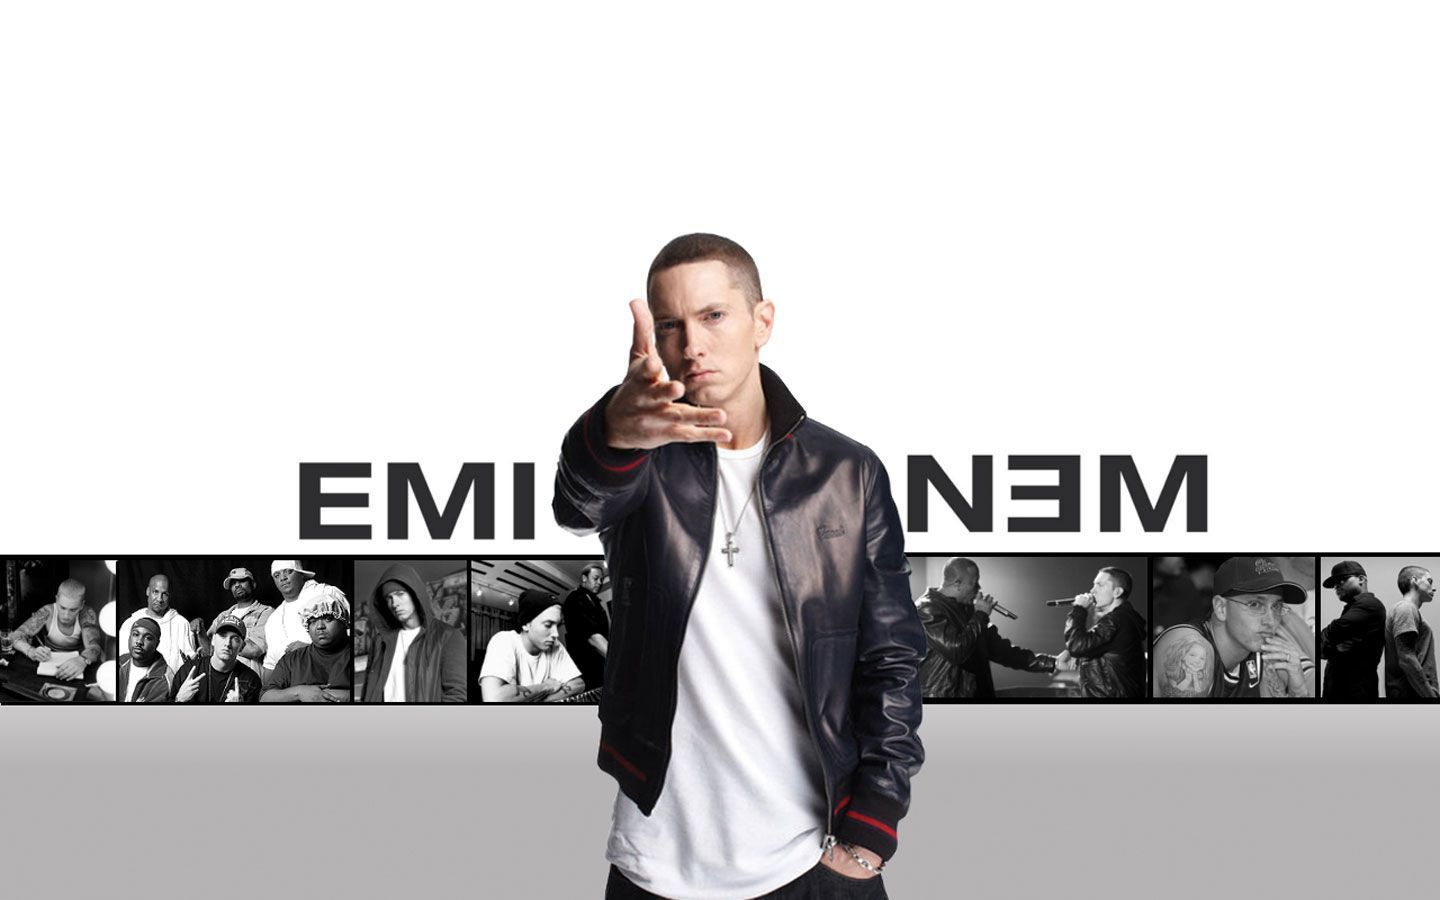 eminem wallpaper